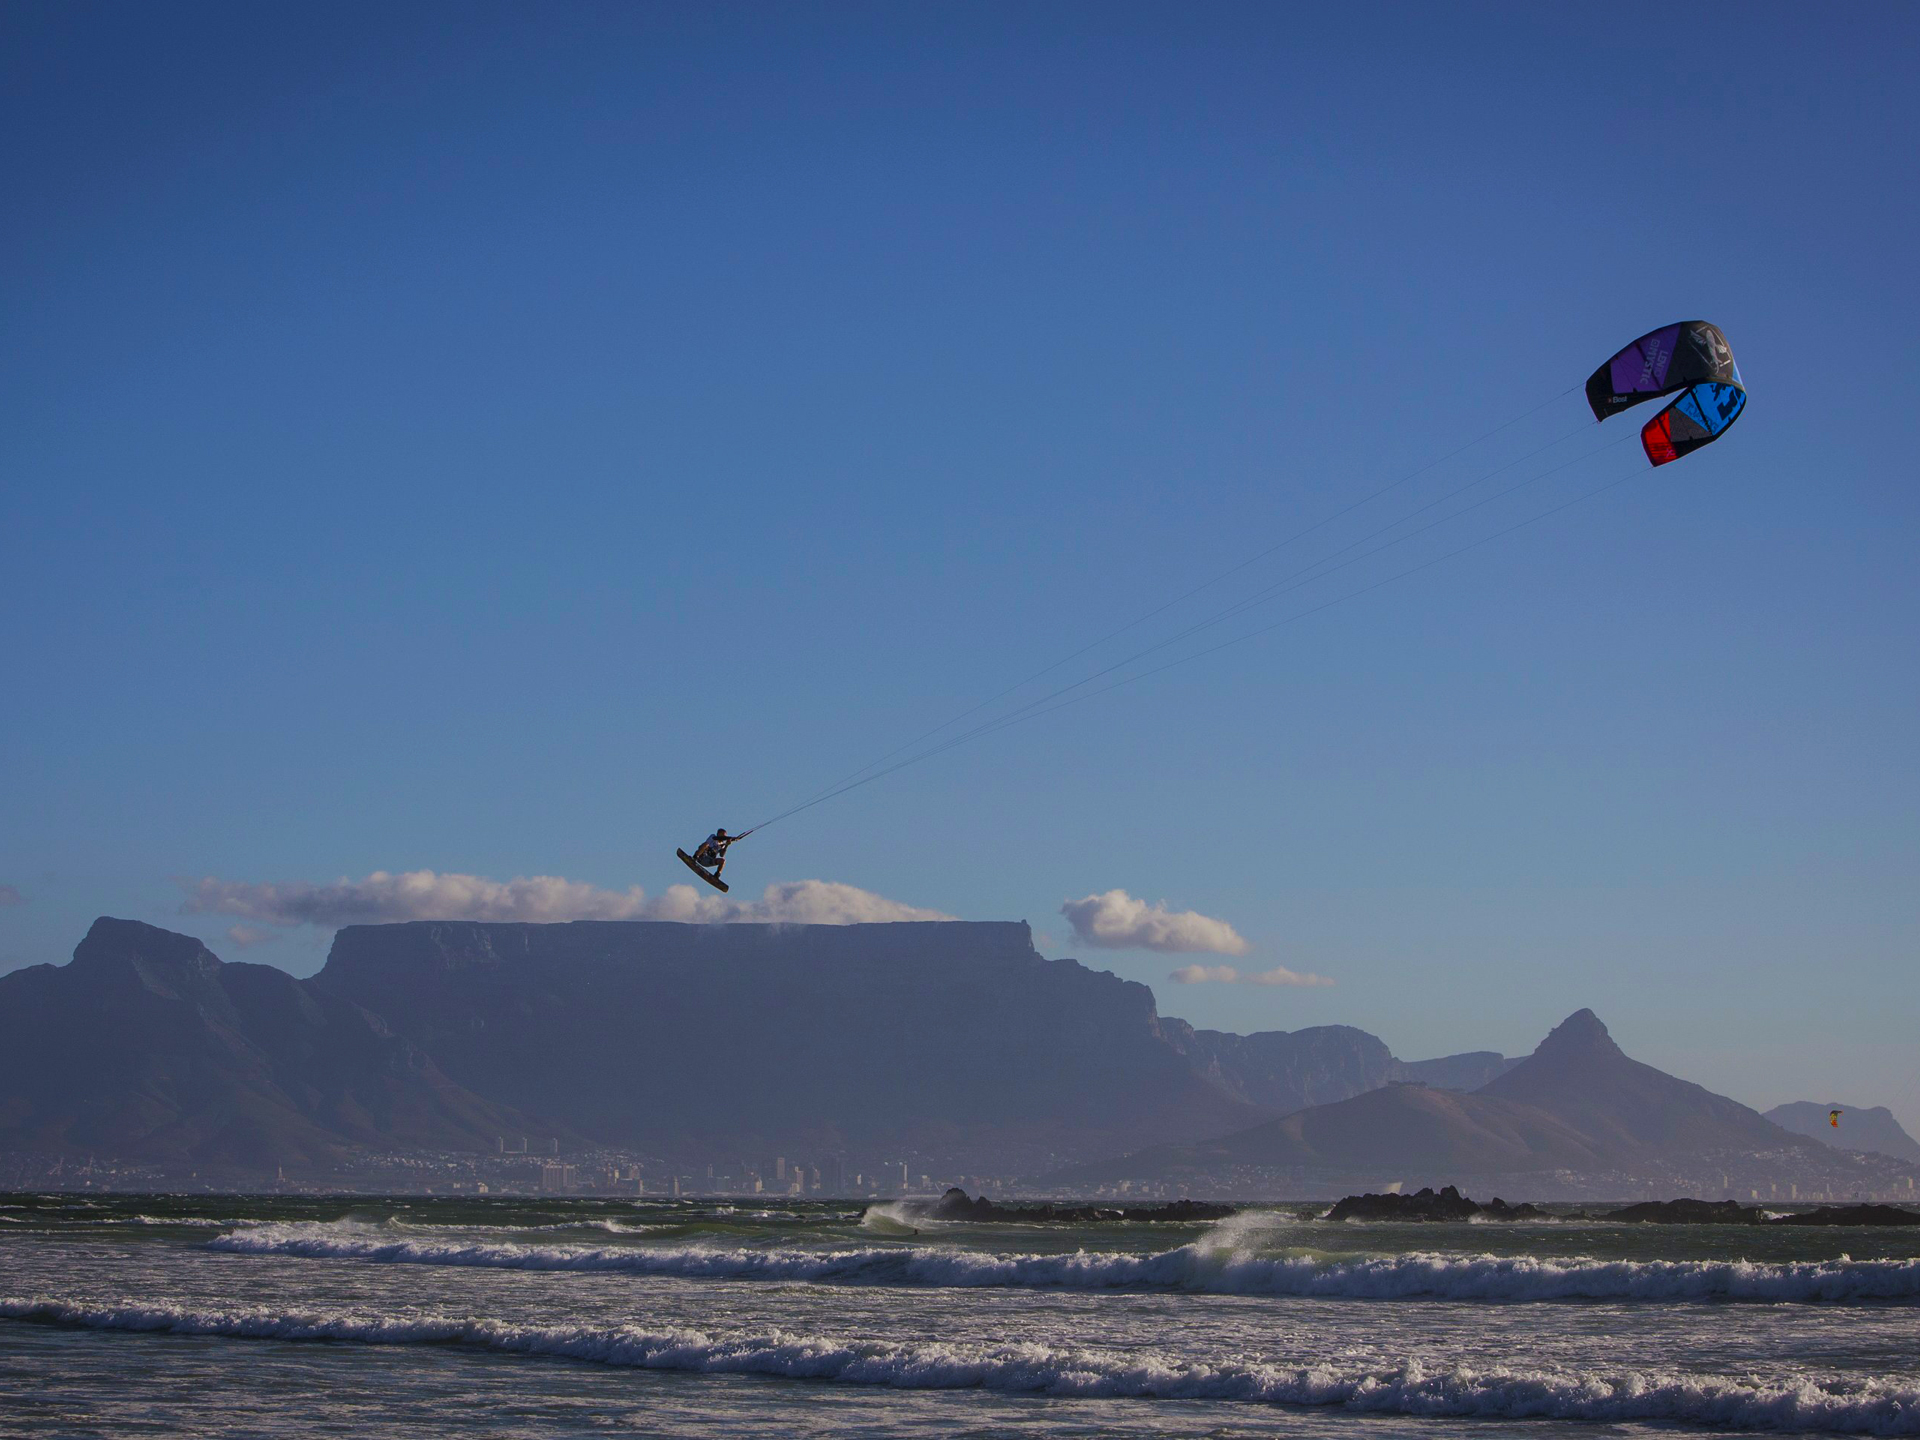 kitesurf wallpaper image - Ruben Lenten megaloop at the Red Bull King of the Air on the Best Extract kite - flying above table mountain    - in resolution: Standard 4:3 1920 X 1440